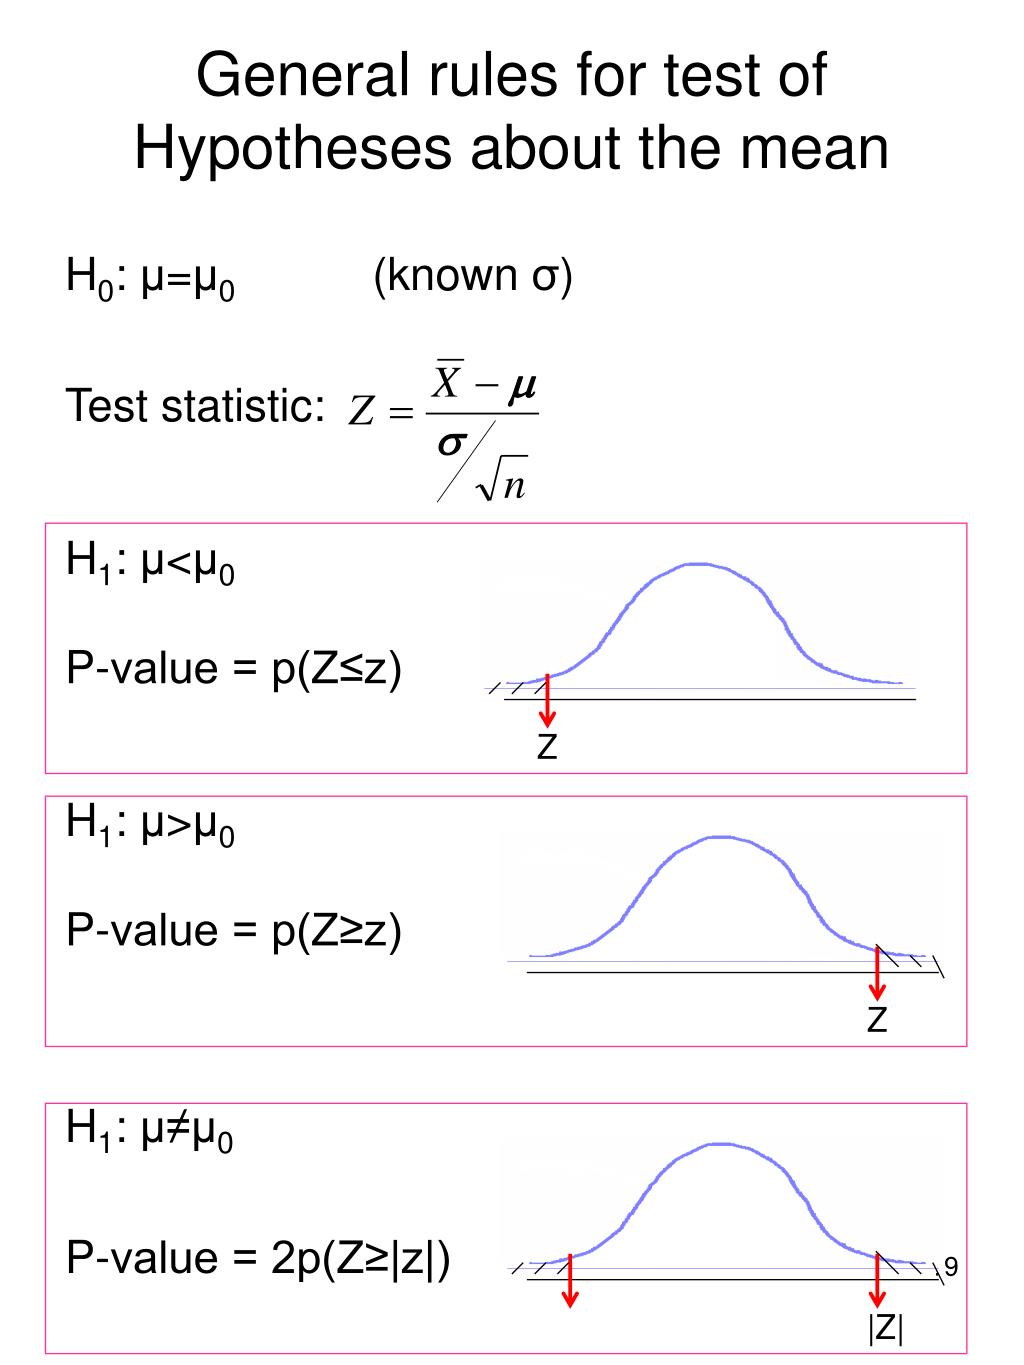 General rules for test of Hypotheses about the mean